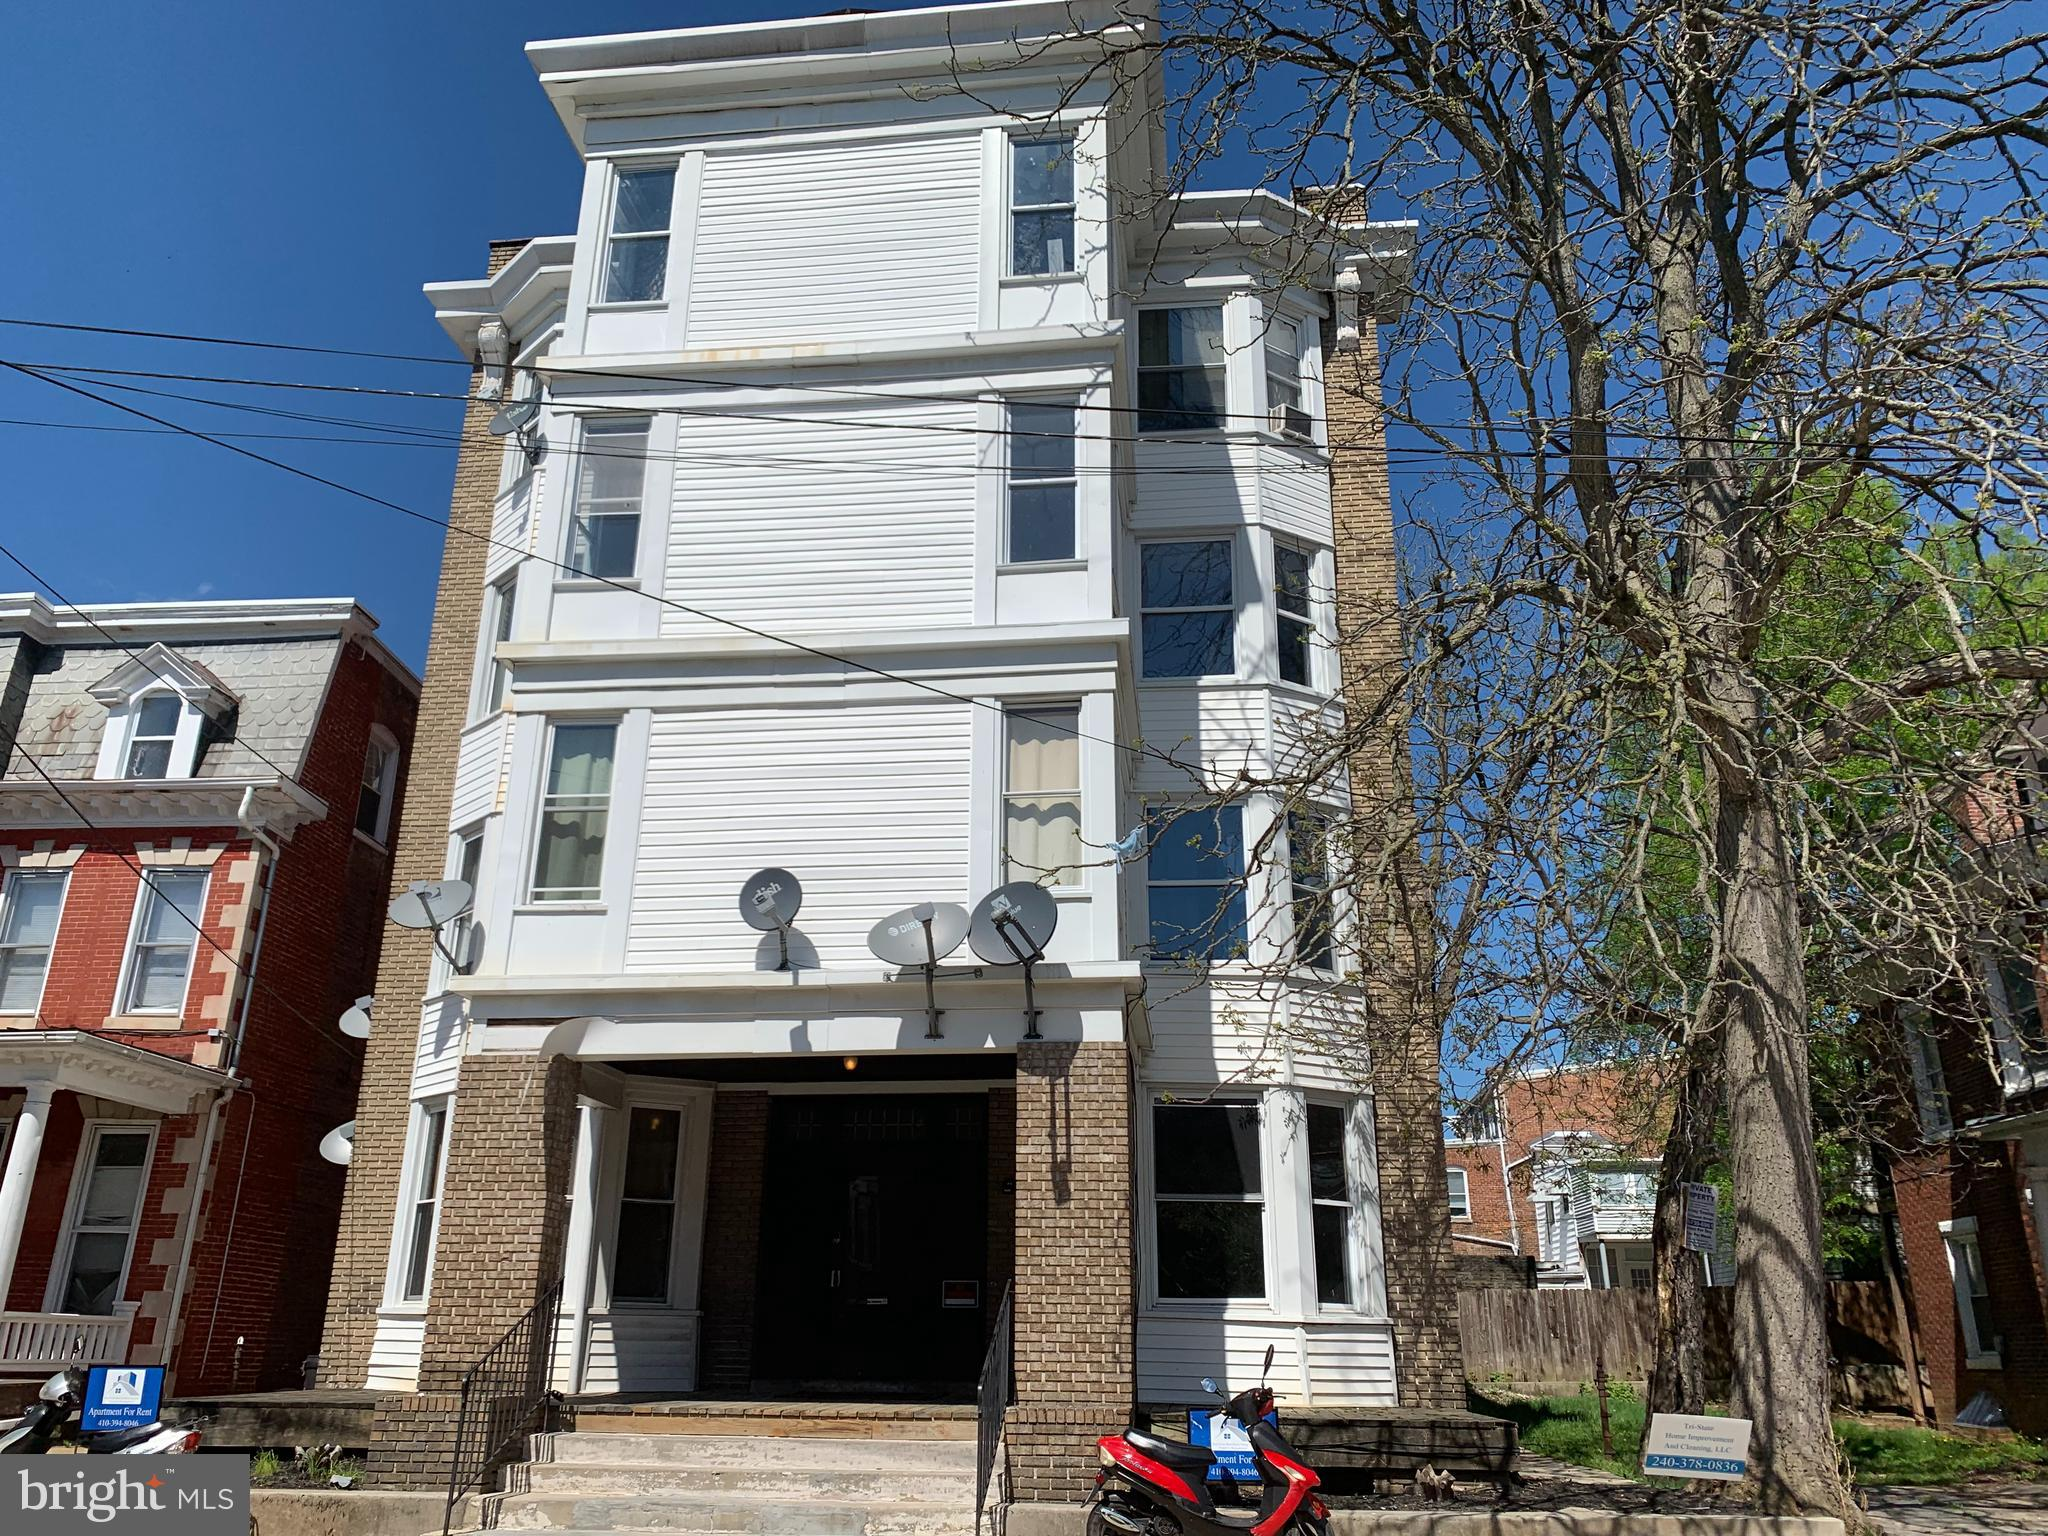 REDUCED PRICE Value-Add Investment Opportunity,  16 One bedroom units, the units are spacious and well designed. great North End location,    Each unit is metered separately for electric and is resident's responsibility. Coin-operated laundry available on main level